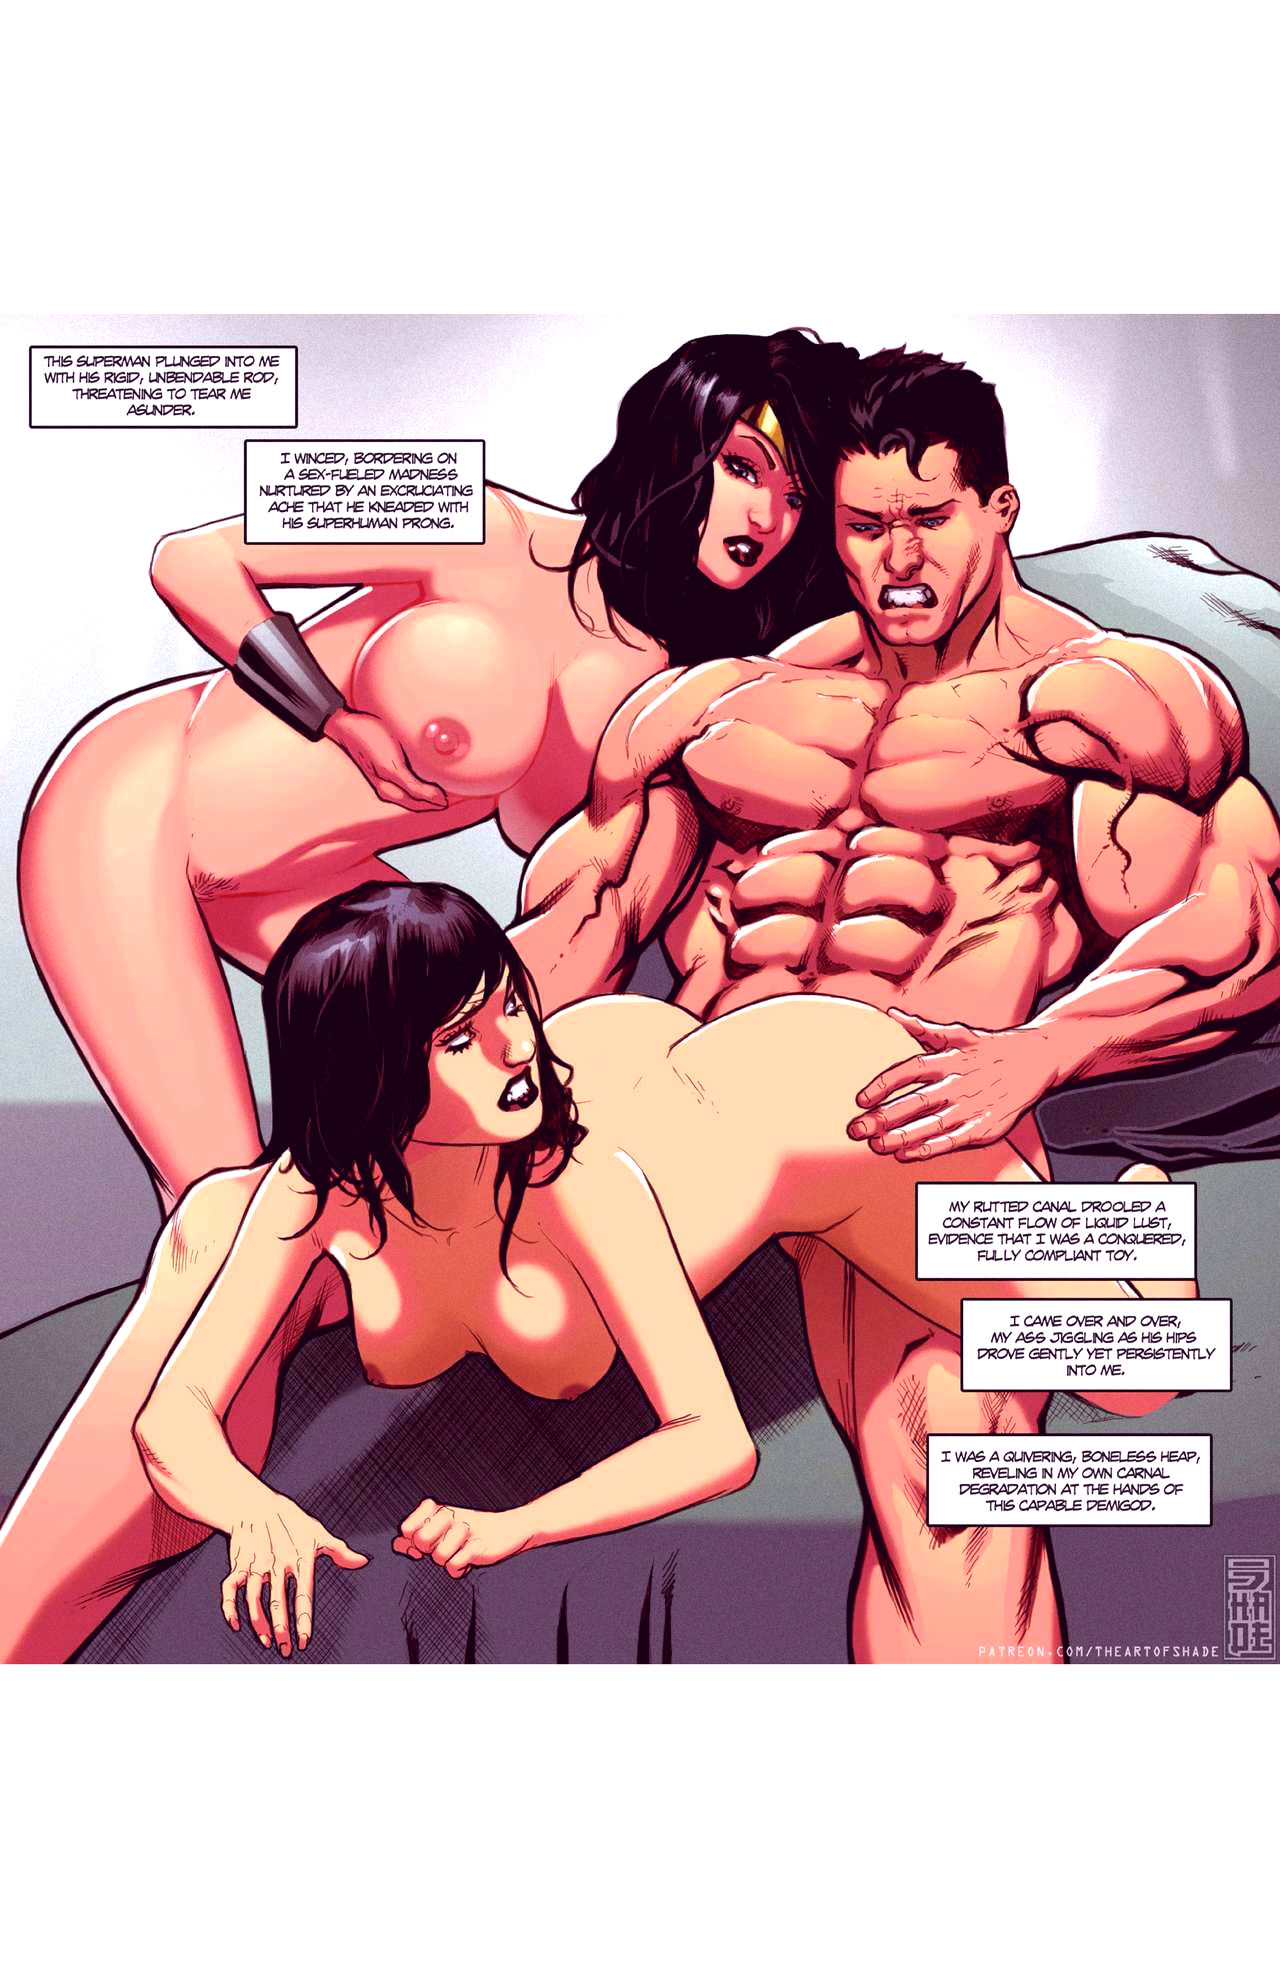 Superheroes after dark extreme porn comic picture 71